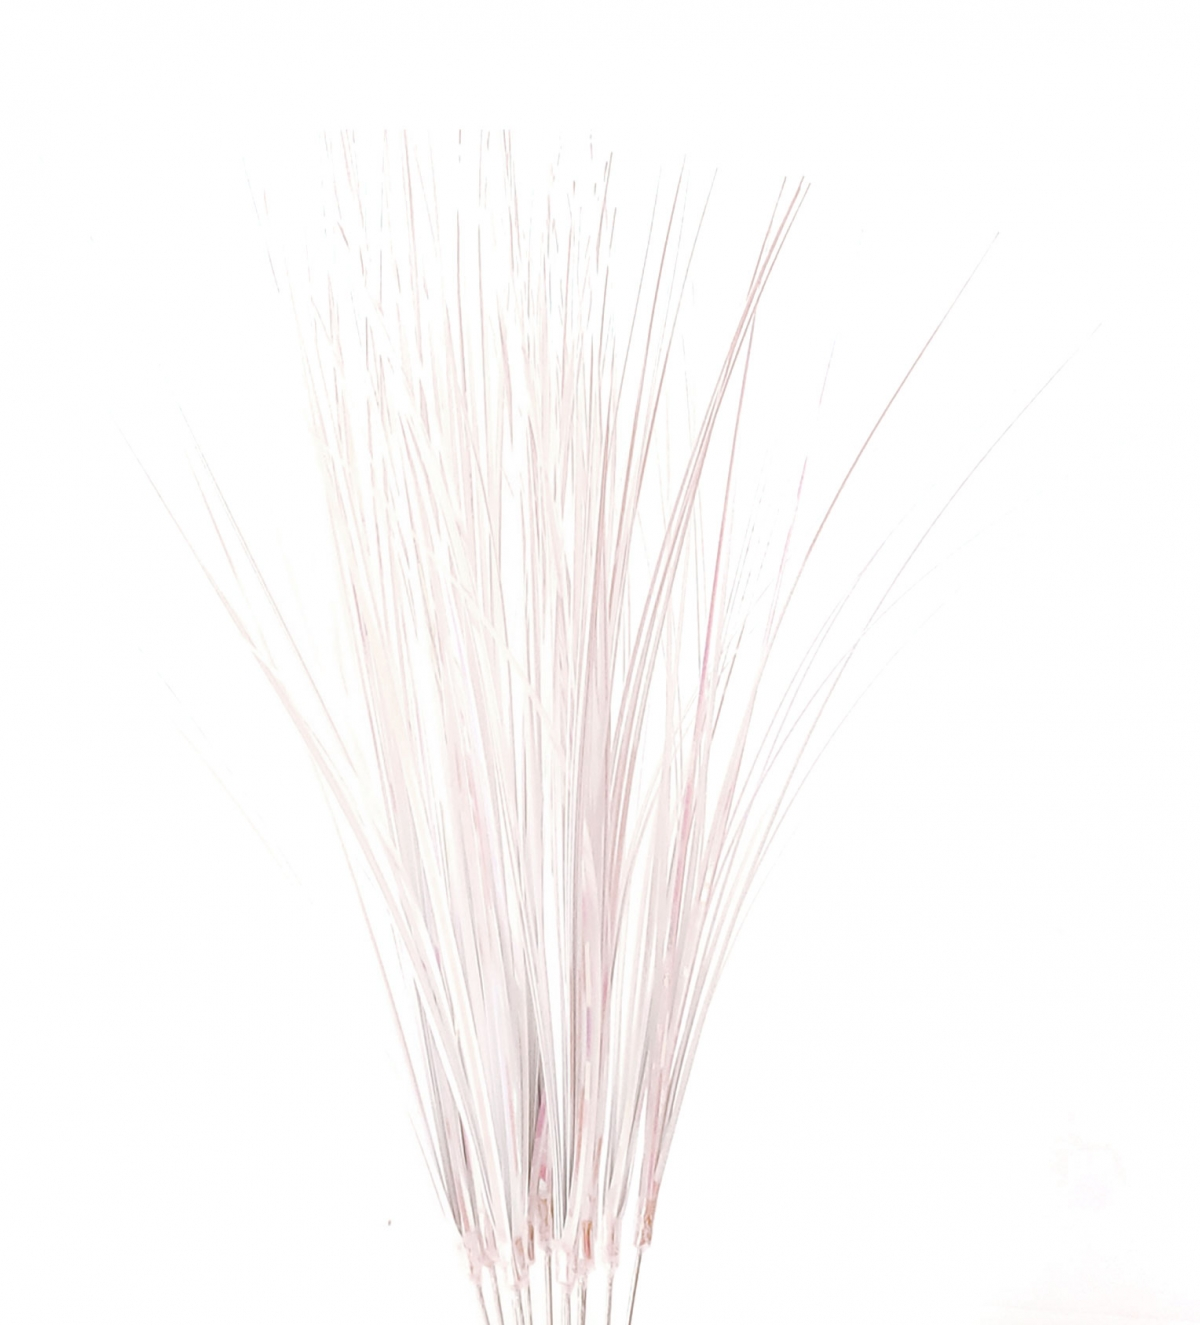 Onion Grass - White Iridescent Floral supplier in Canada ...